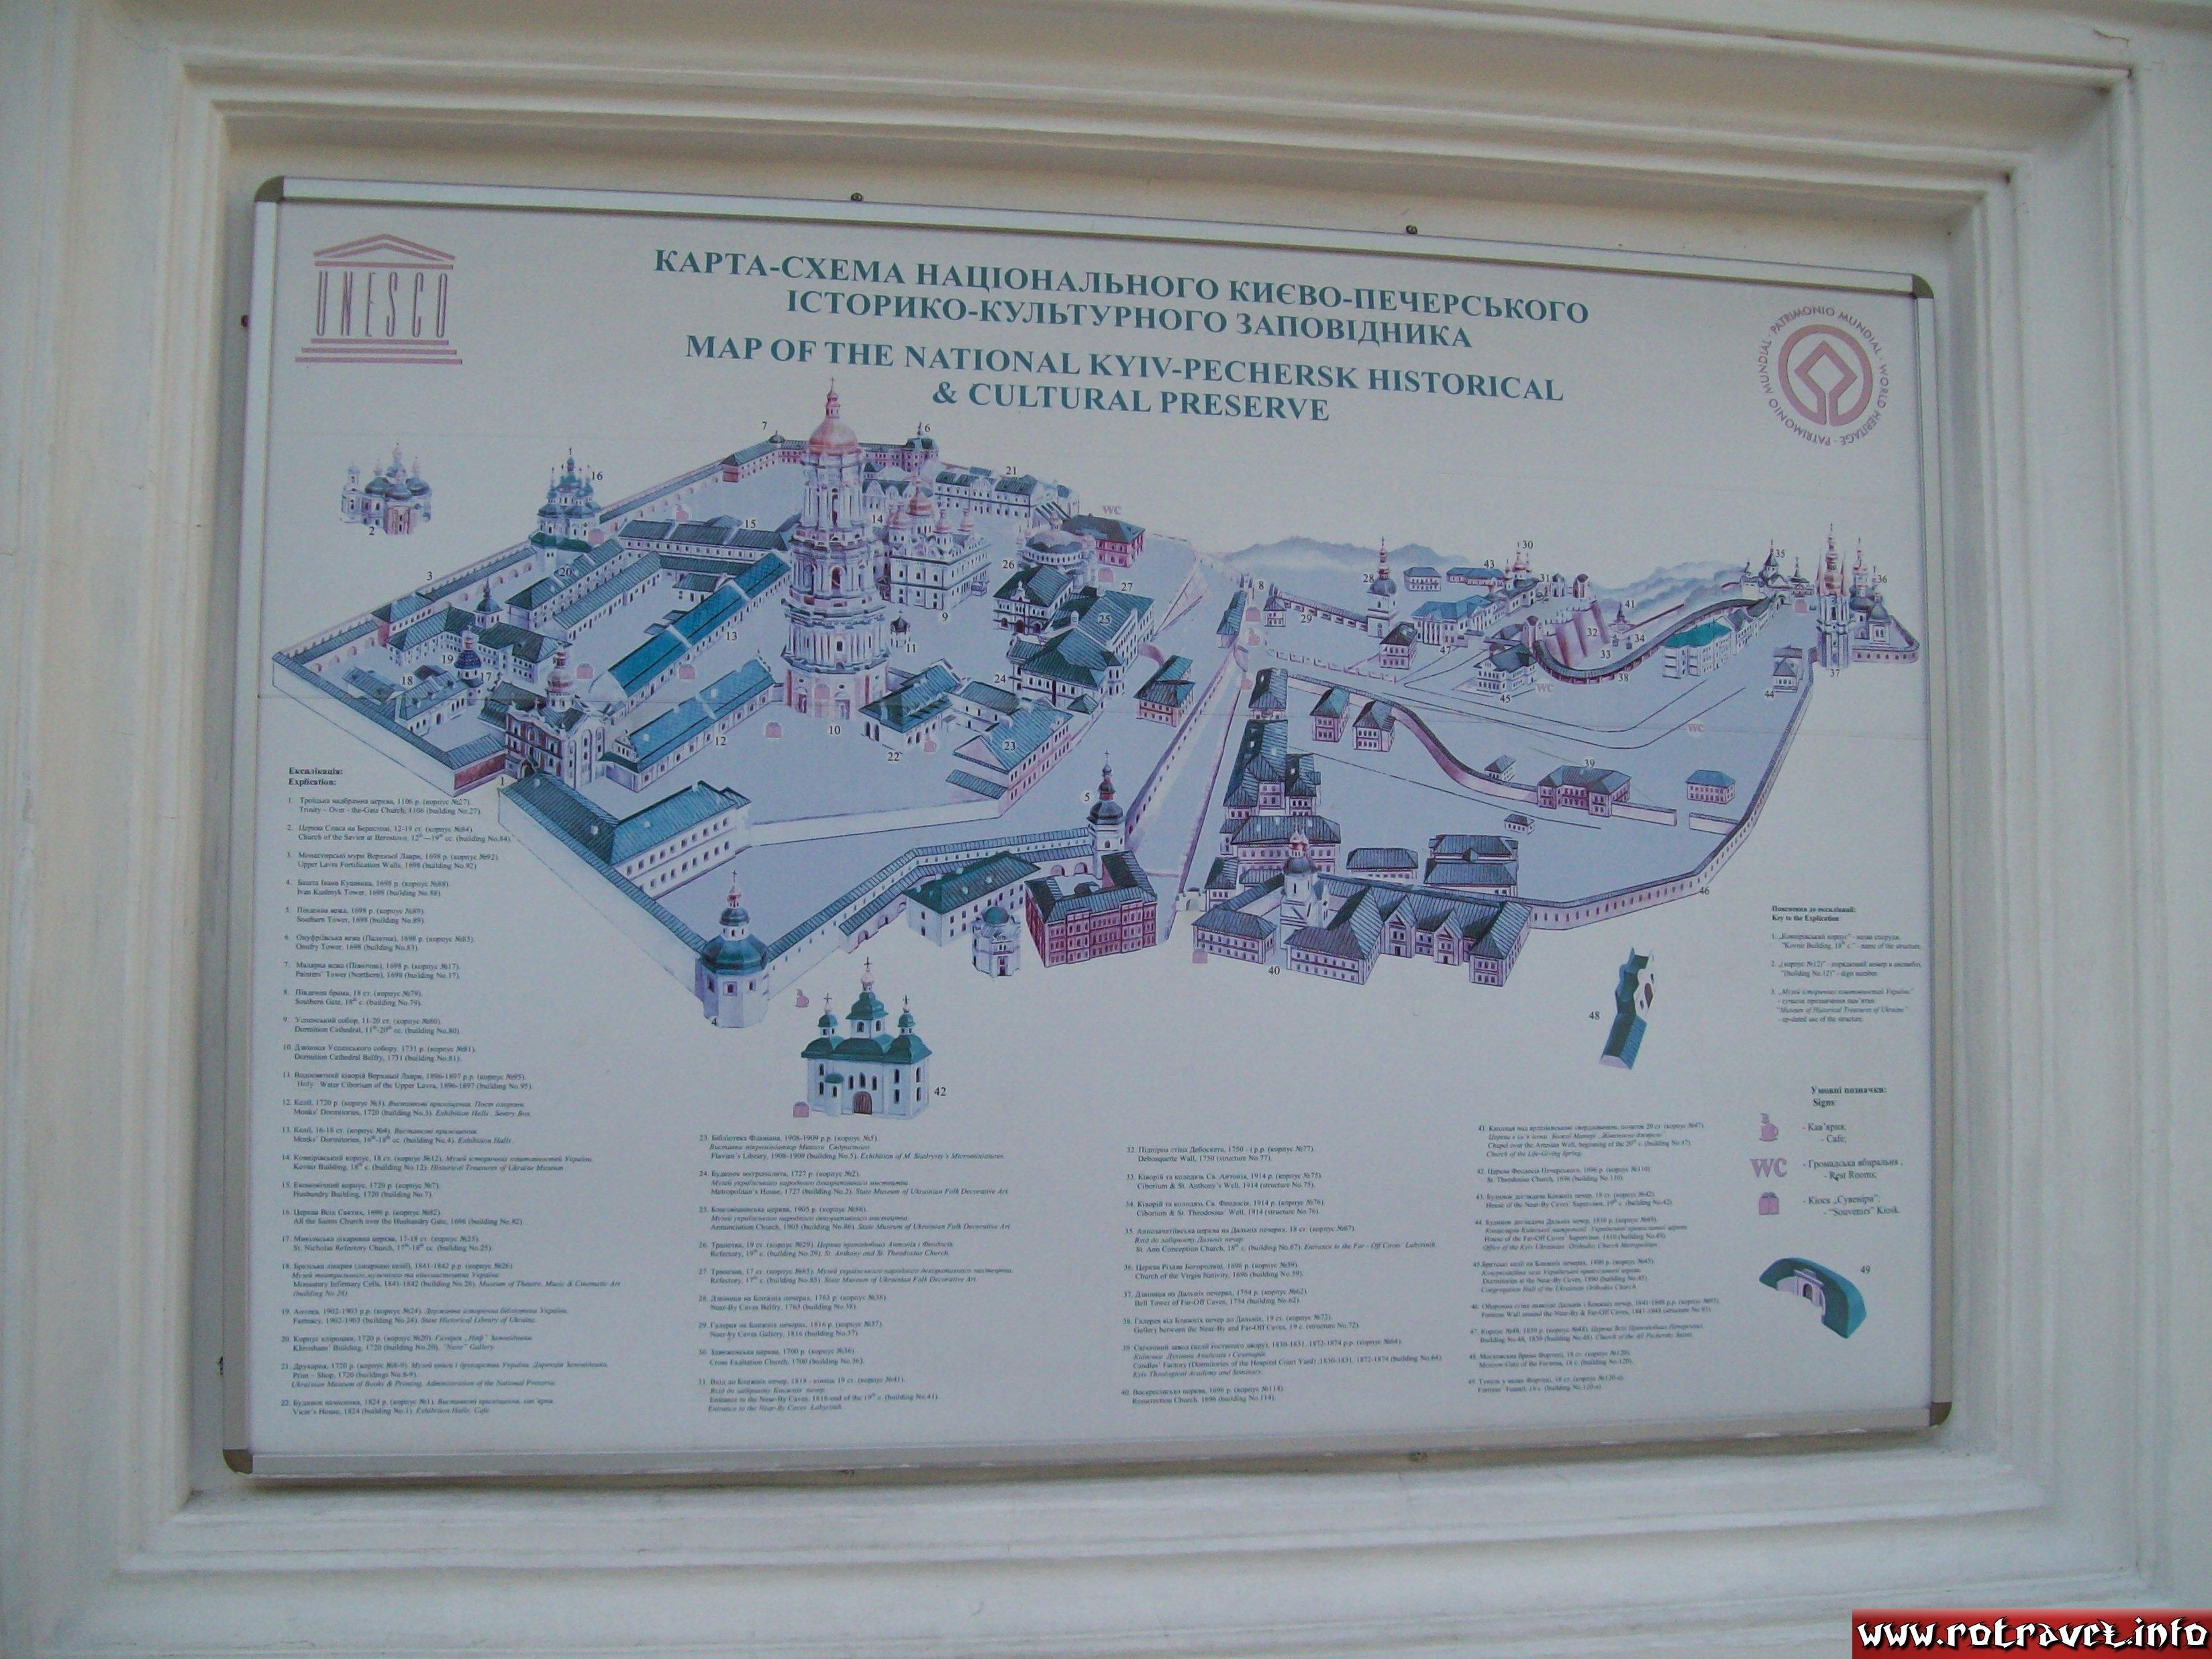 The guide panel from the entrance to the complex